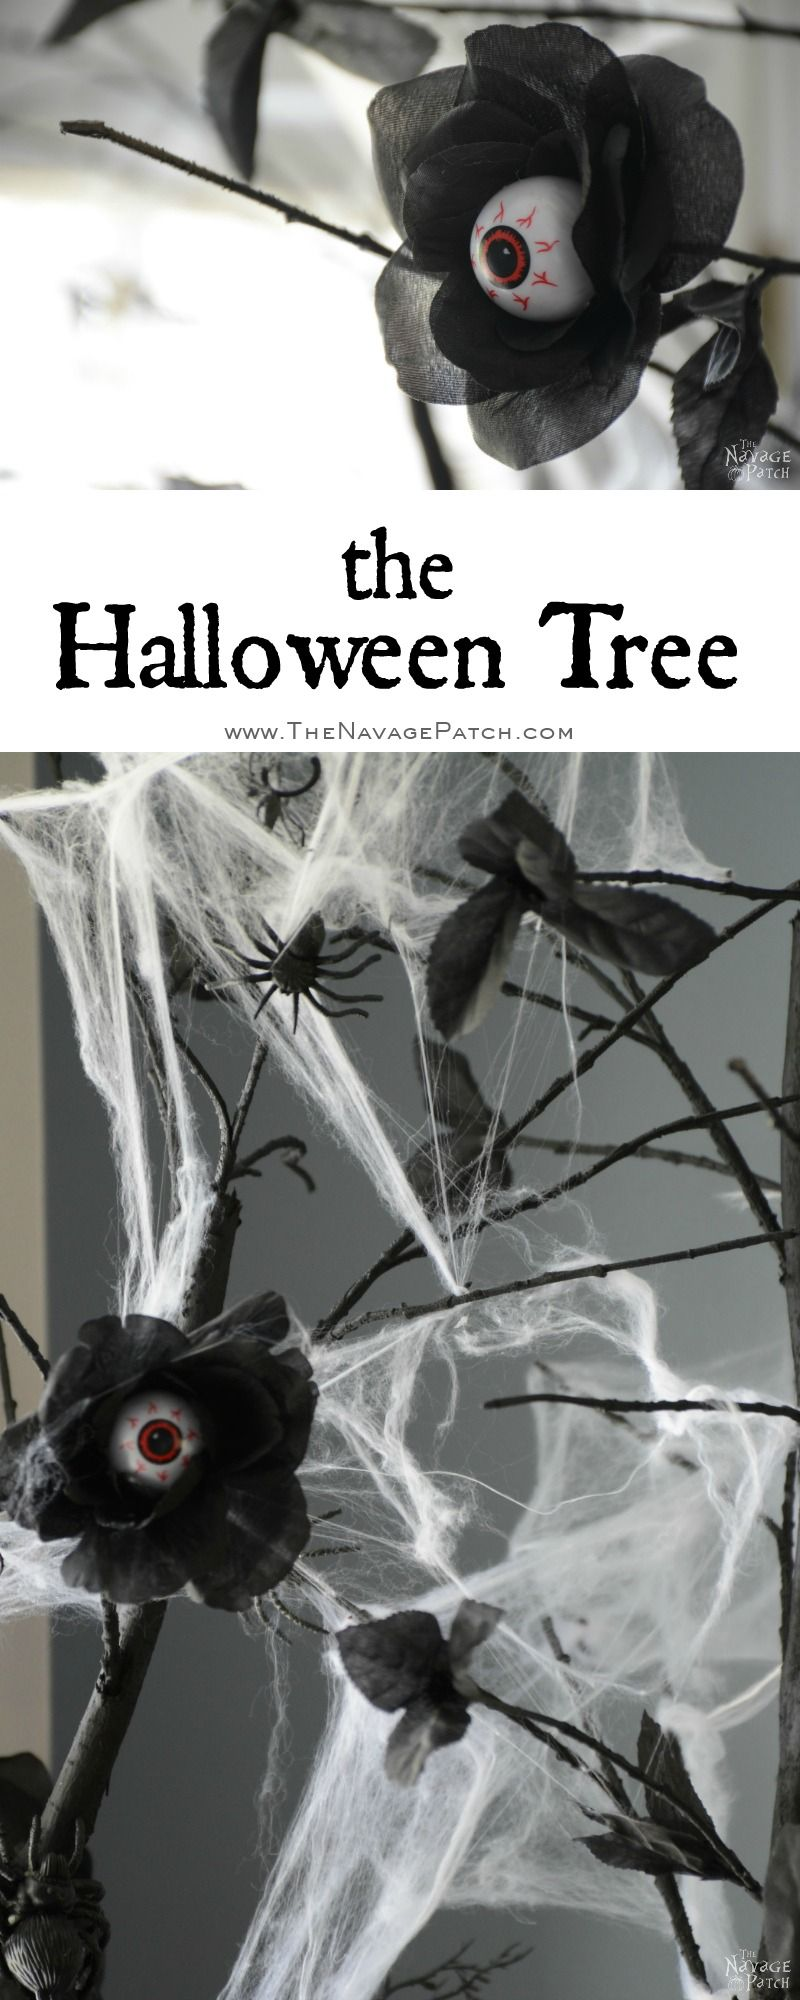 The Halloween Tree - The Navage Patch